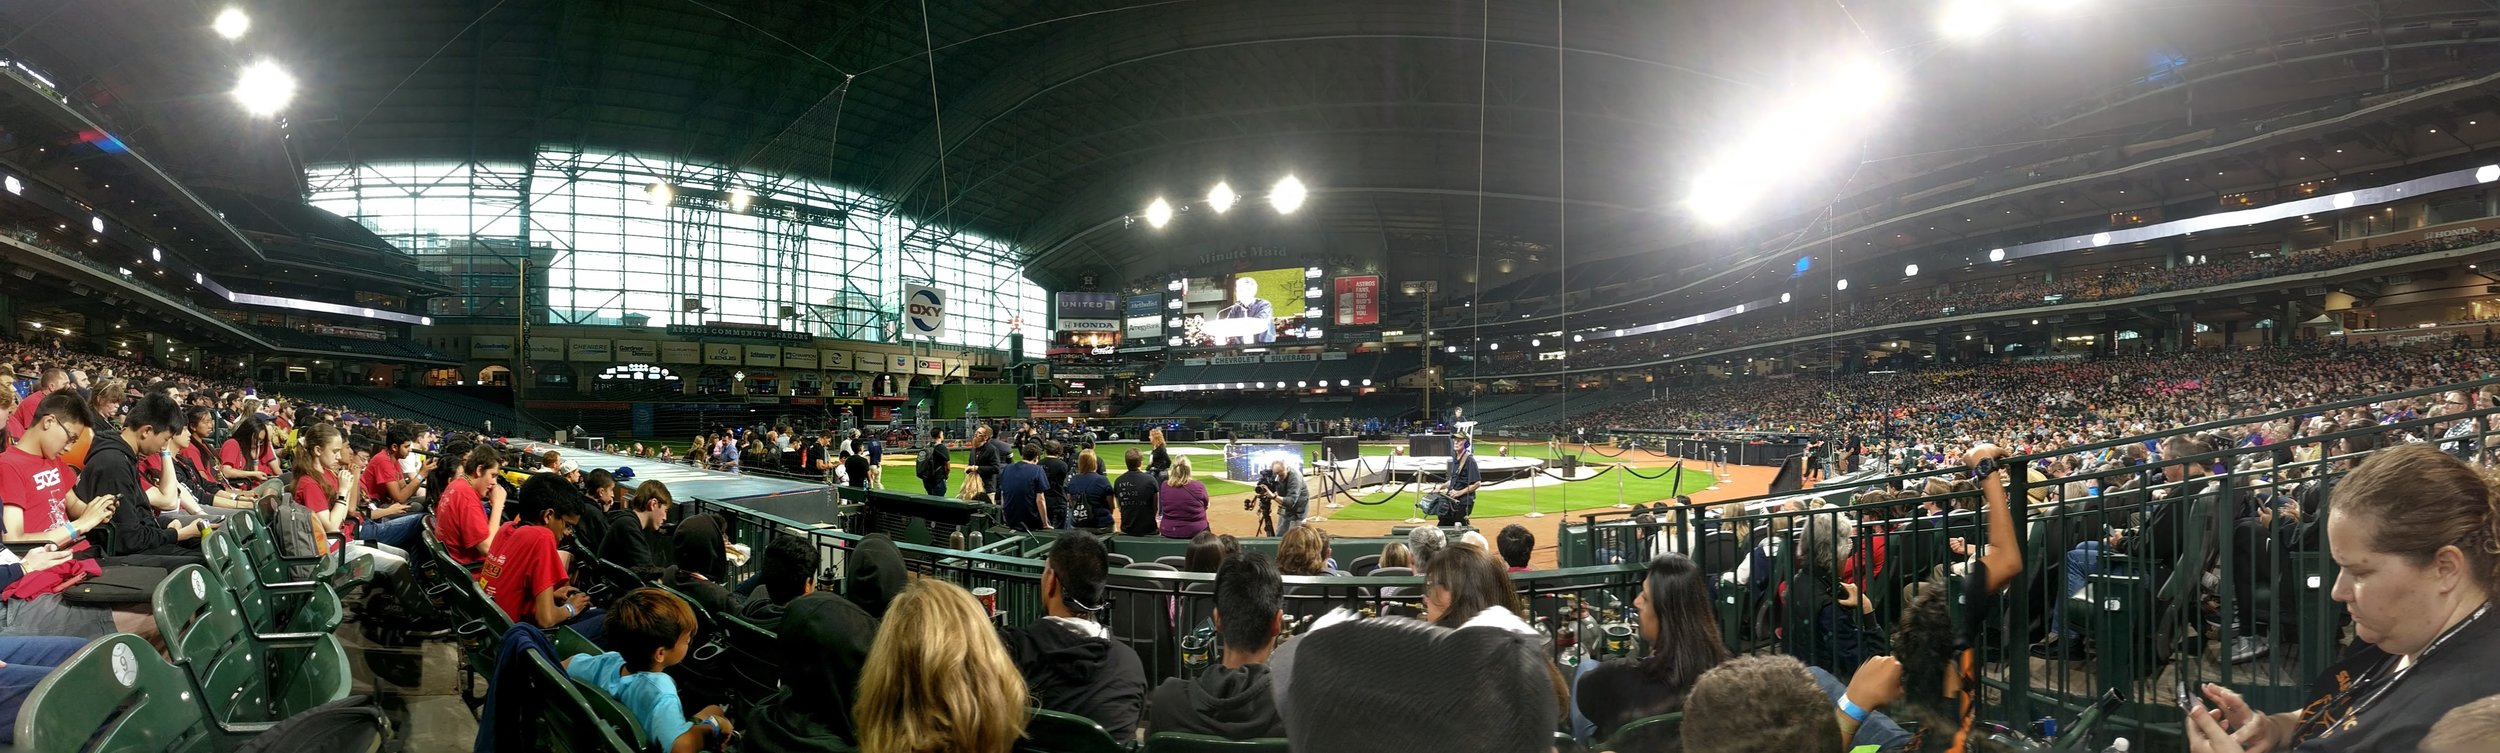 Our view at Minute Maid Park